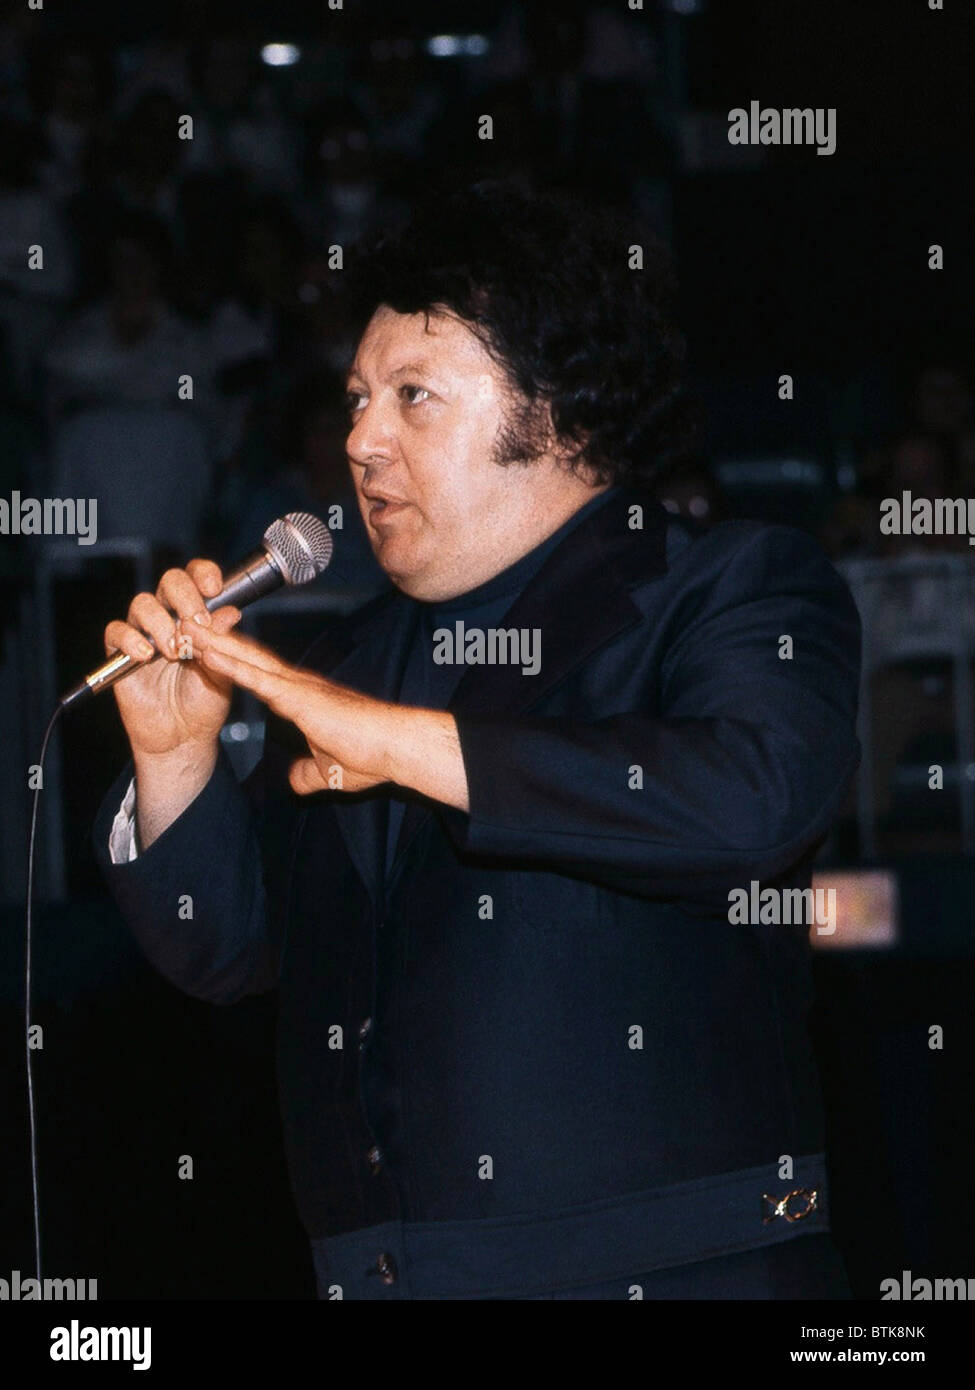 Marty Allen, 1975, Millrun Playhouse Theater in the Round, Niles, Illinois. - Stock Image